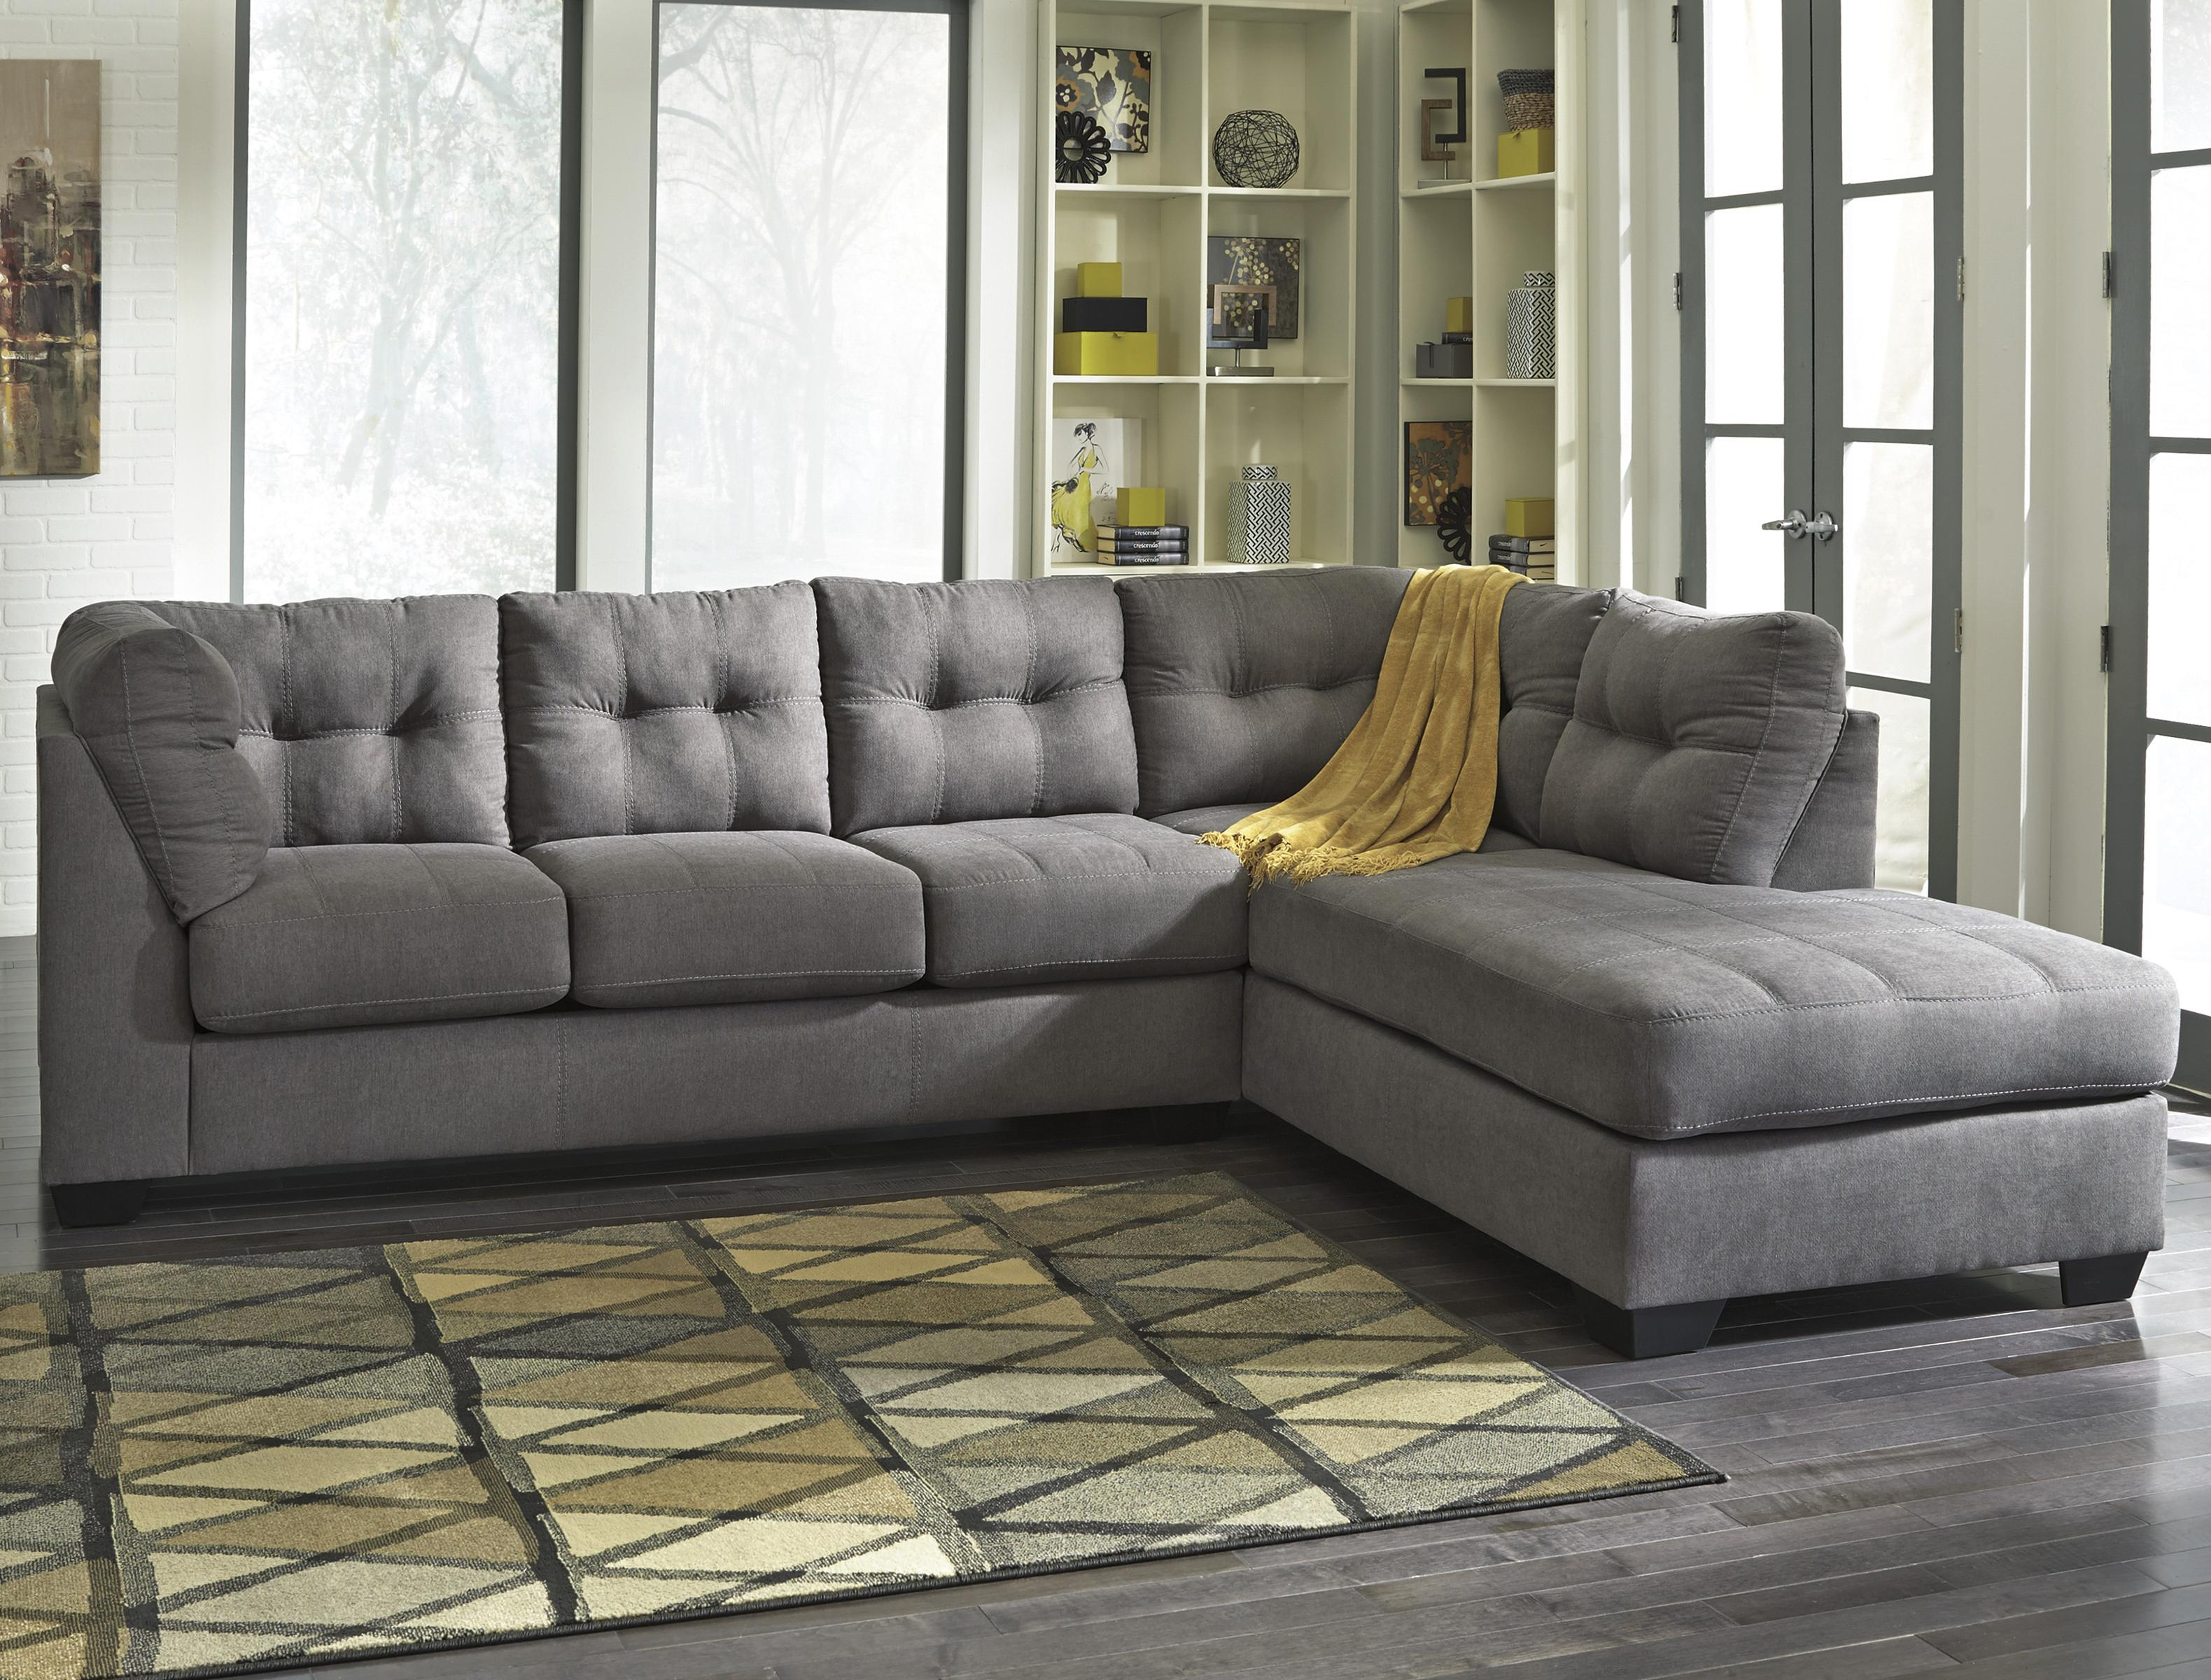 Benchcraft Maier Charcoal 2 Piece Sectional With Right